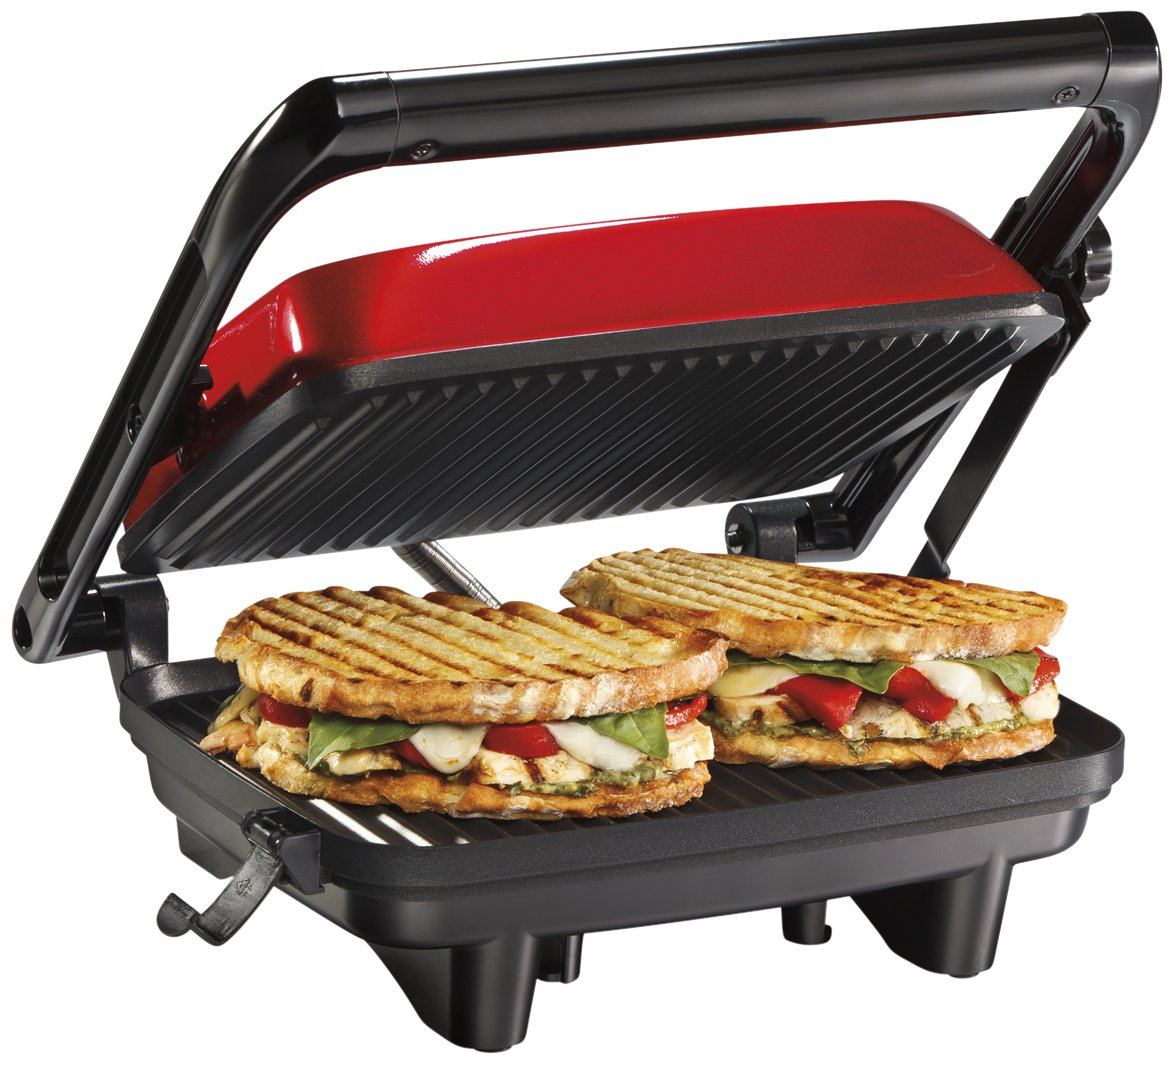 Hamilton Beach 25462Z Panini Press Gourmet Sandwich Maker by Hamilton Beach (Image #1)